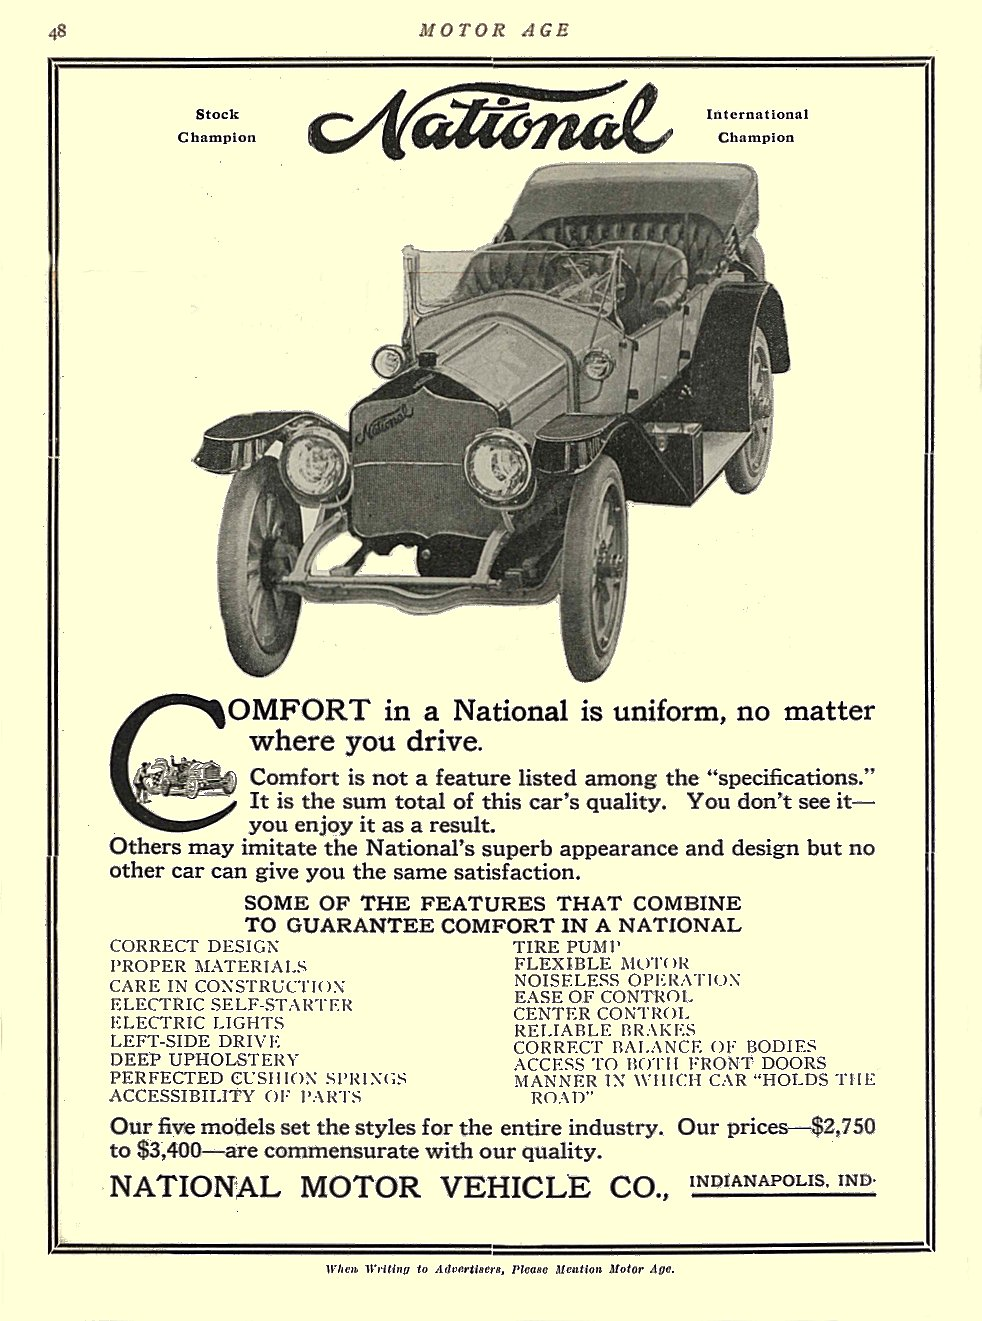 1913 5 1 NATIONAL COMFORT in a National is uniform, No matter where you drive. National Motor Vehicle Co. Indianapolis, IND MOTOR AGE May 1, 1913 8.5″x11.5″ University of Minnesota Library page 48